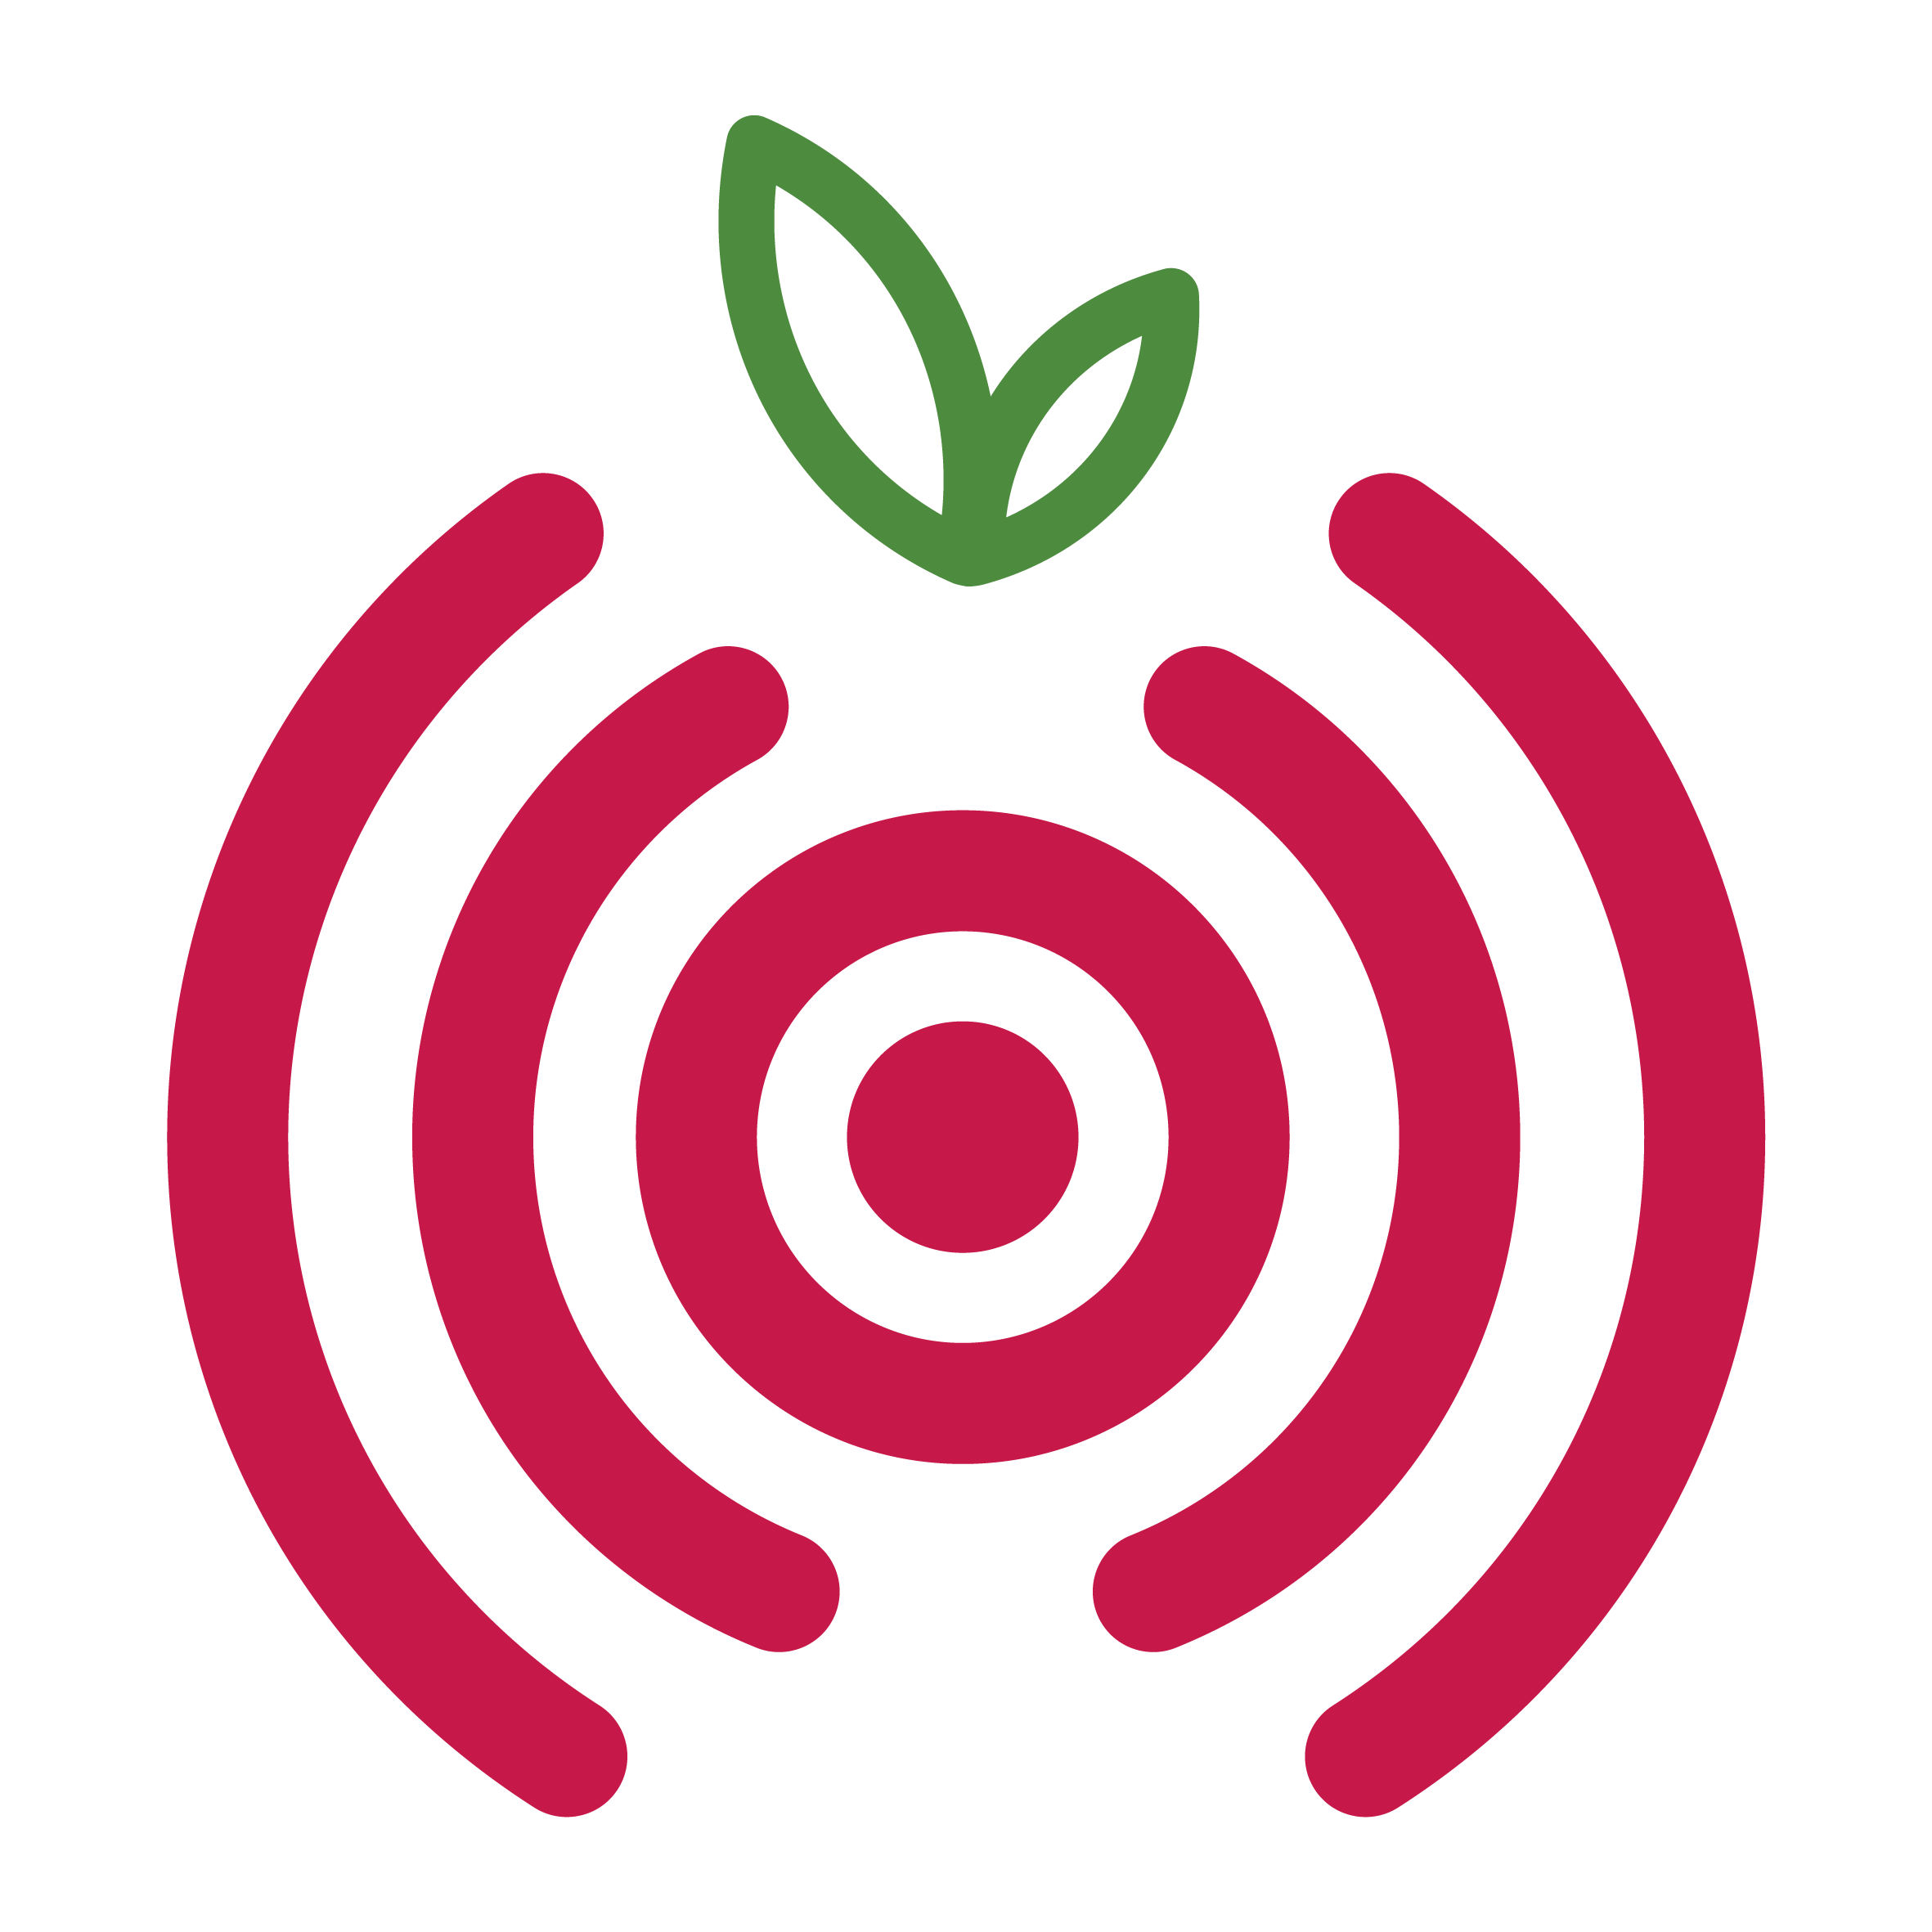 logo/PNG/icon_color-01.png